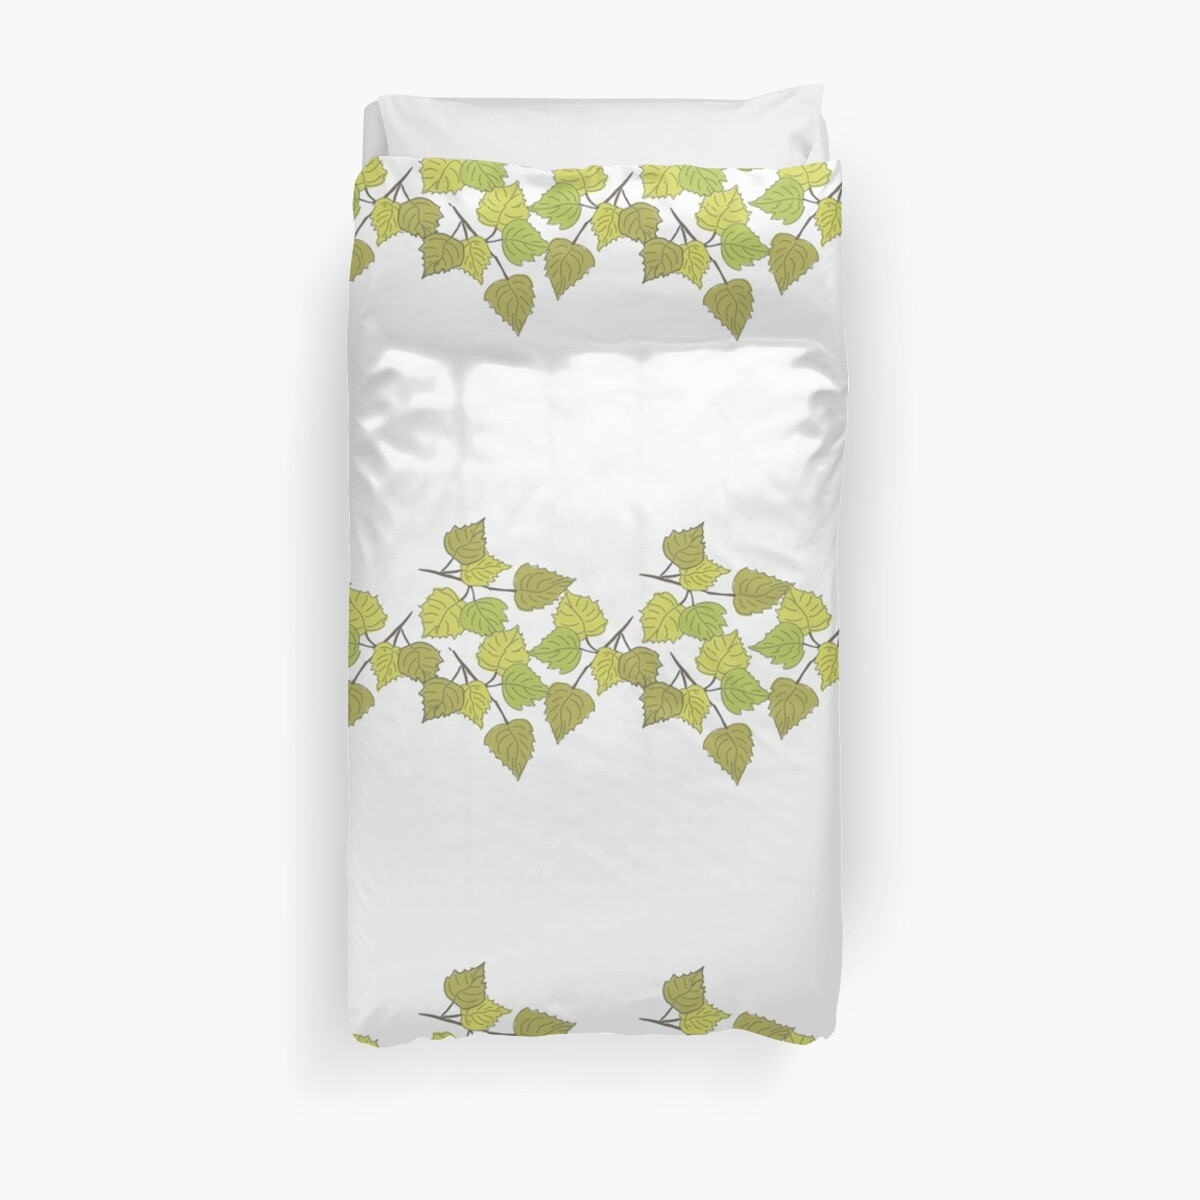 Birch leaves by NataliaL